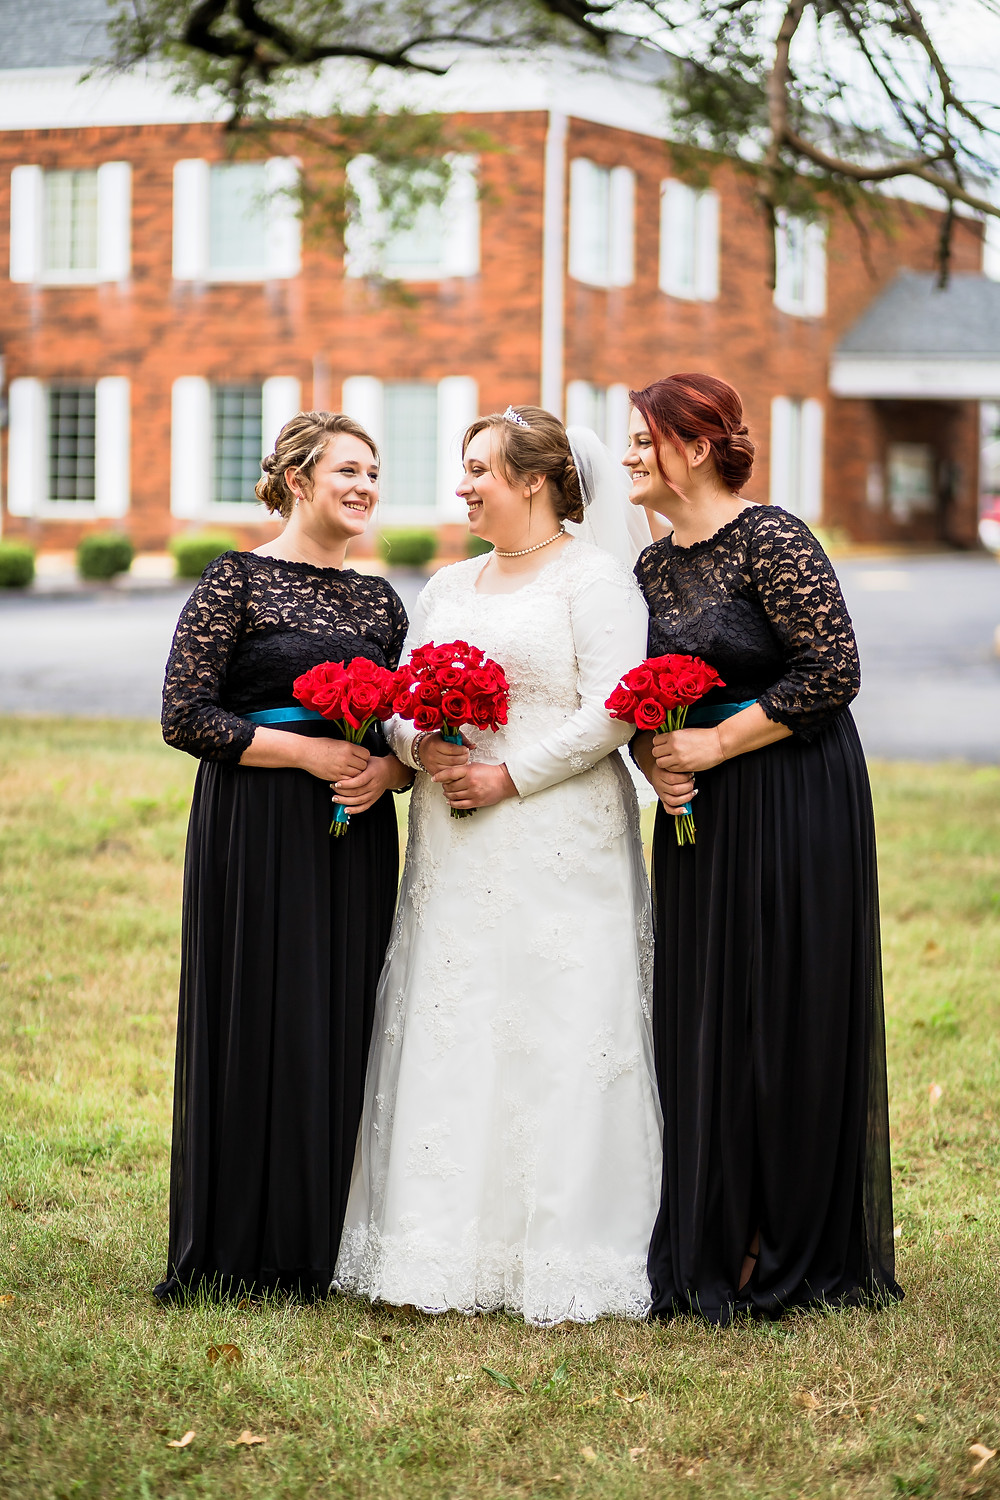 Bridesmaids smiling at each other